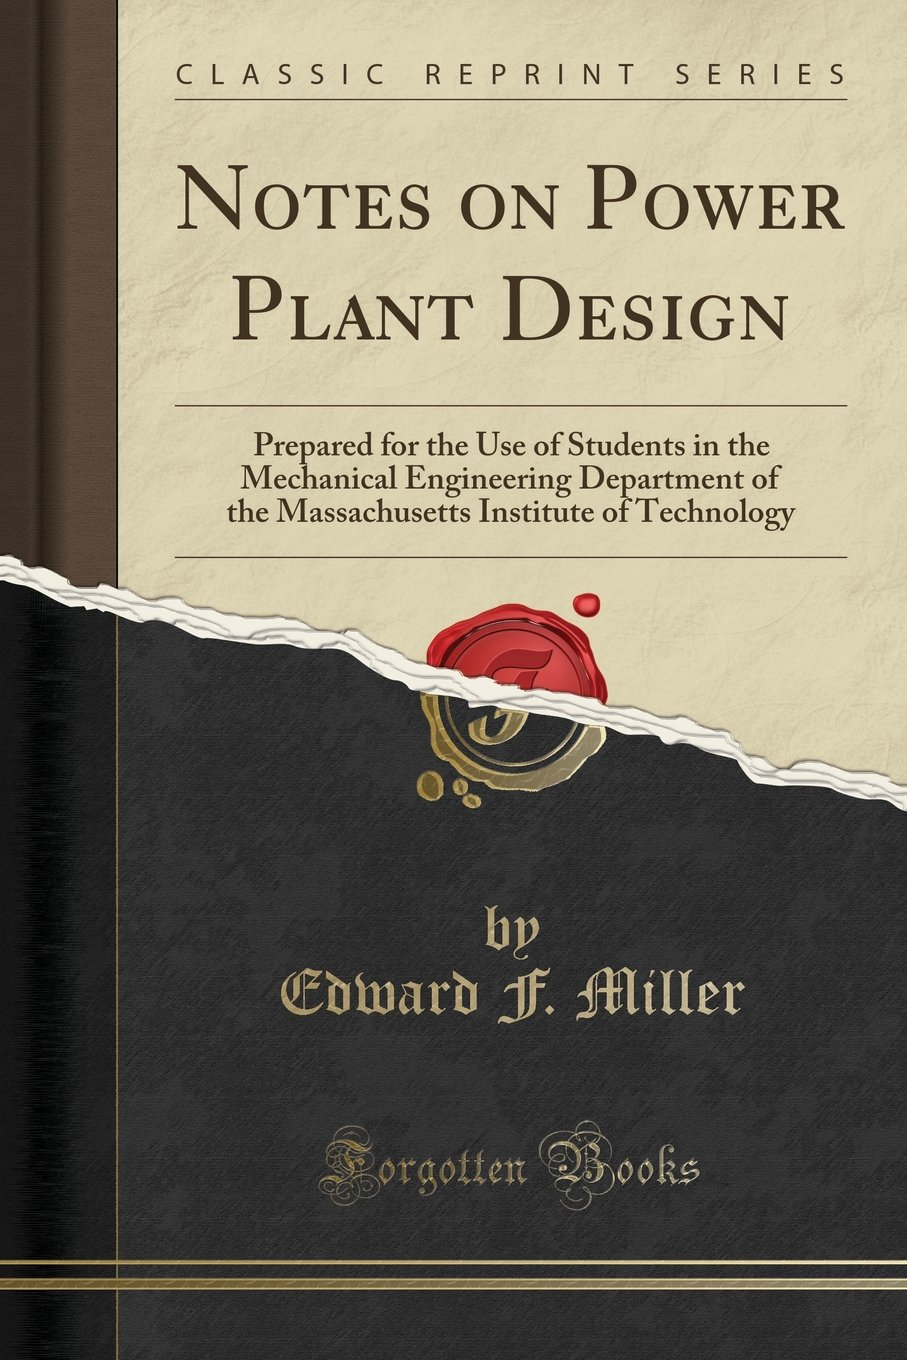 Notes on Power Plant Design: Prepared for the Use of Students in the Mechanical Engineering Department of the Massachusetts Institute of Technology (Classic Reprint) PDF